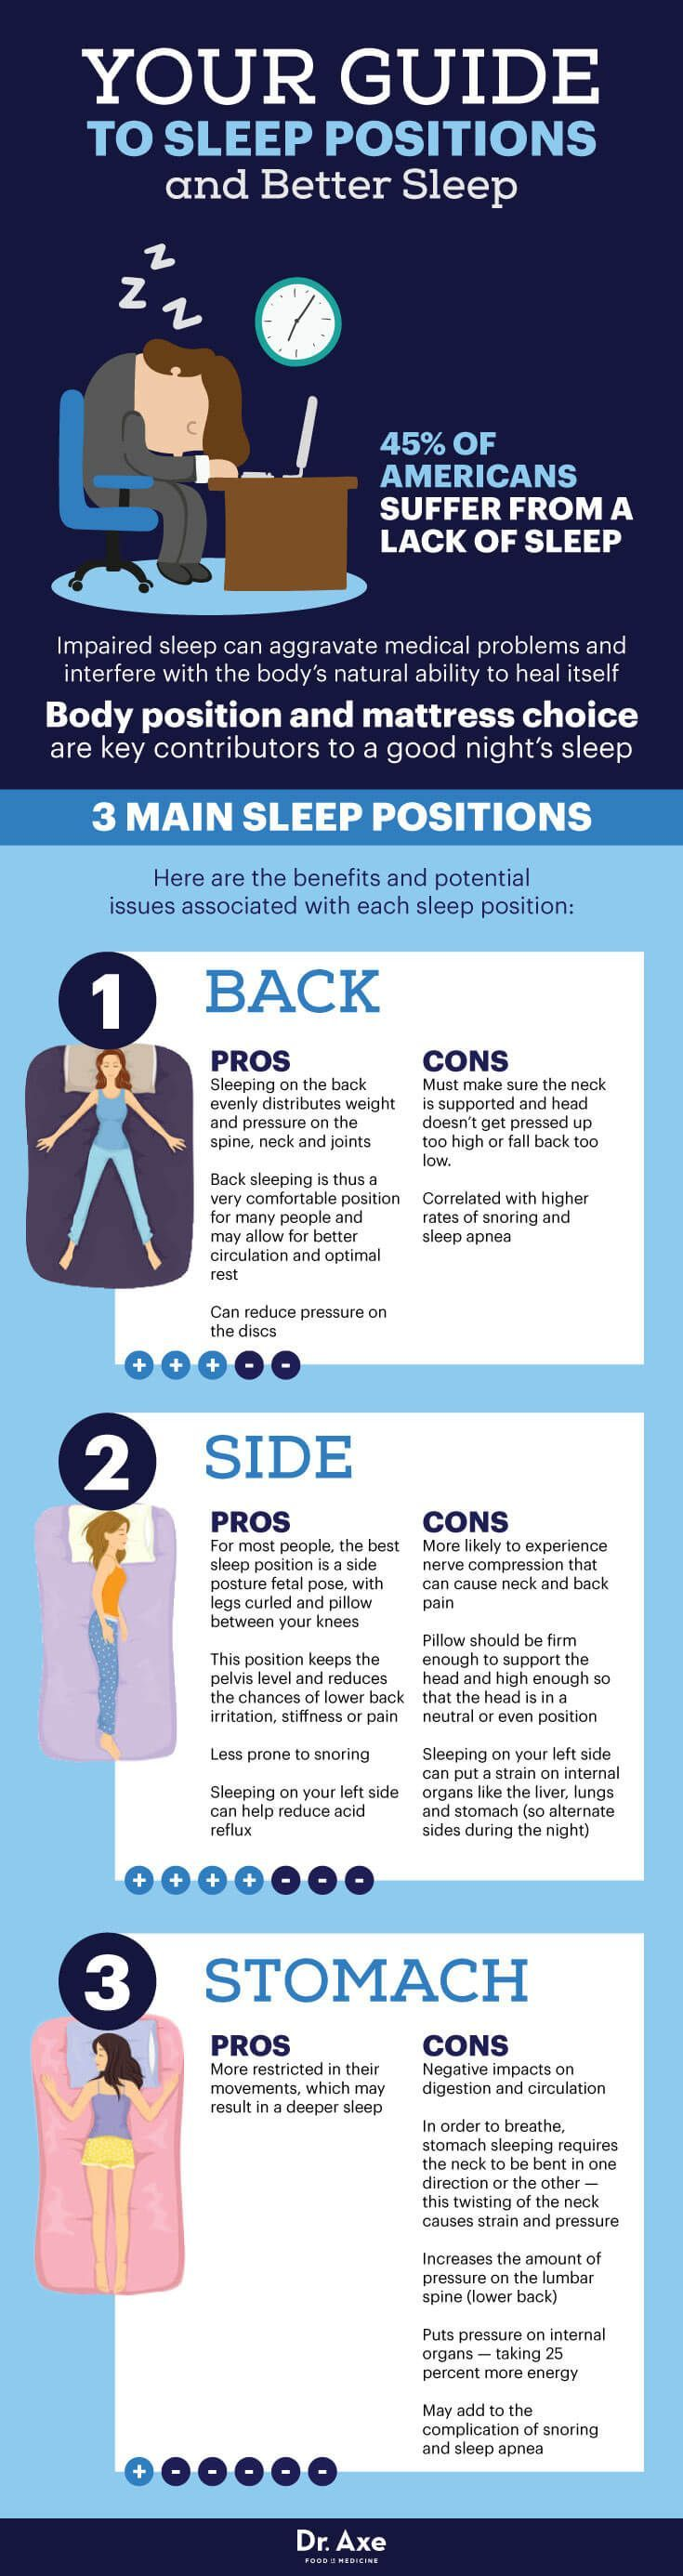 Guide to sleep positions - Dr. Axe http://www.draxe.com #health #holistic #natural